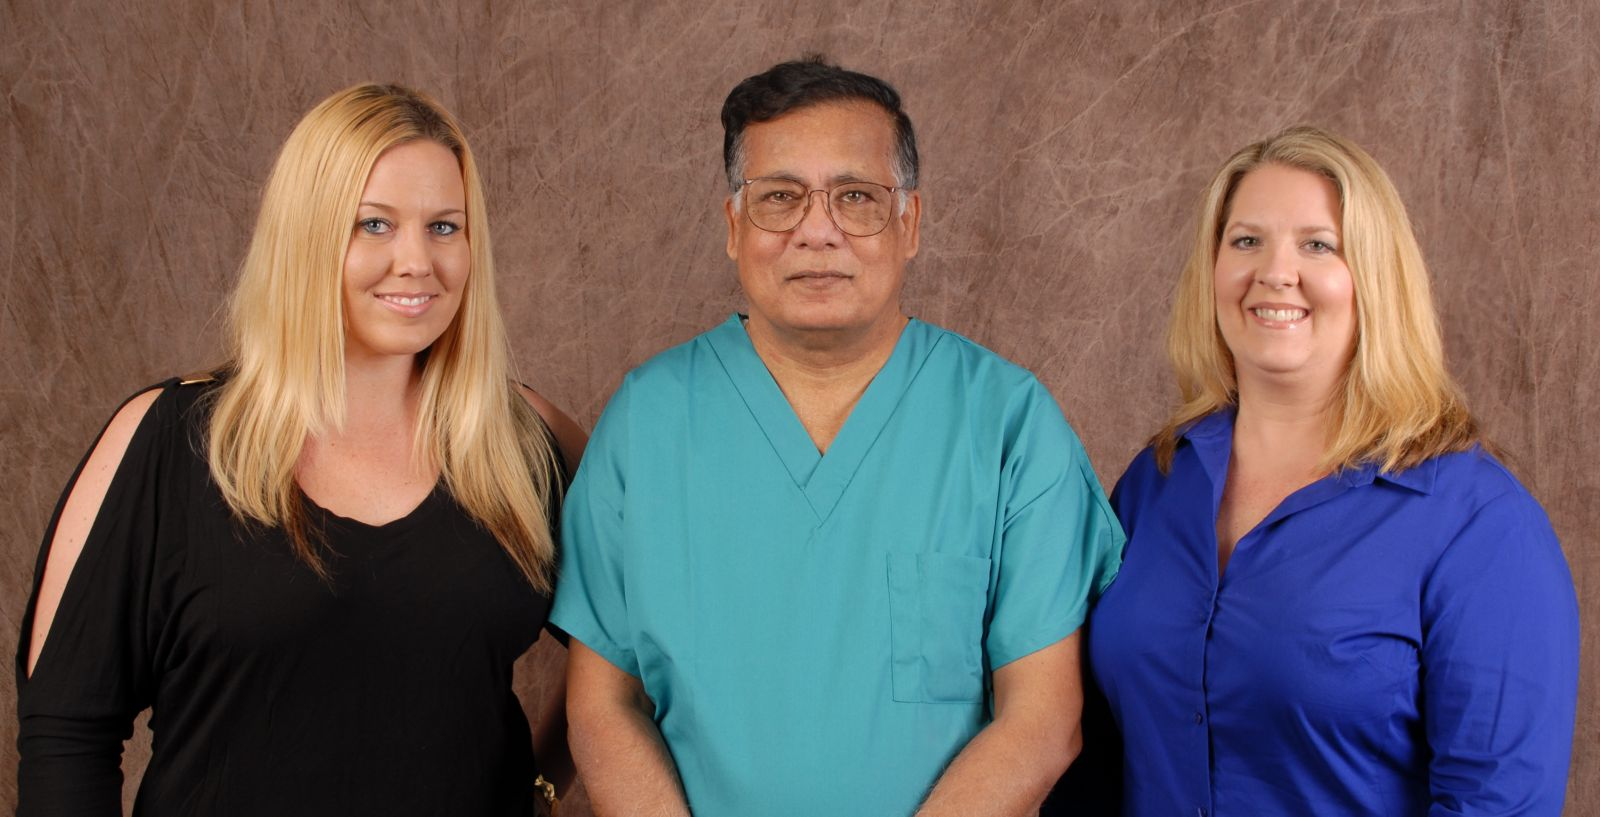 Dr. Kasem and his team